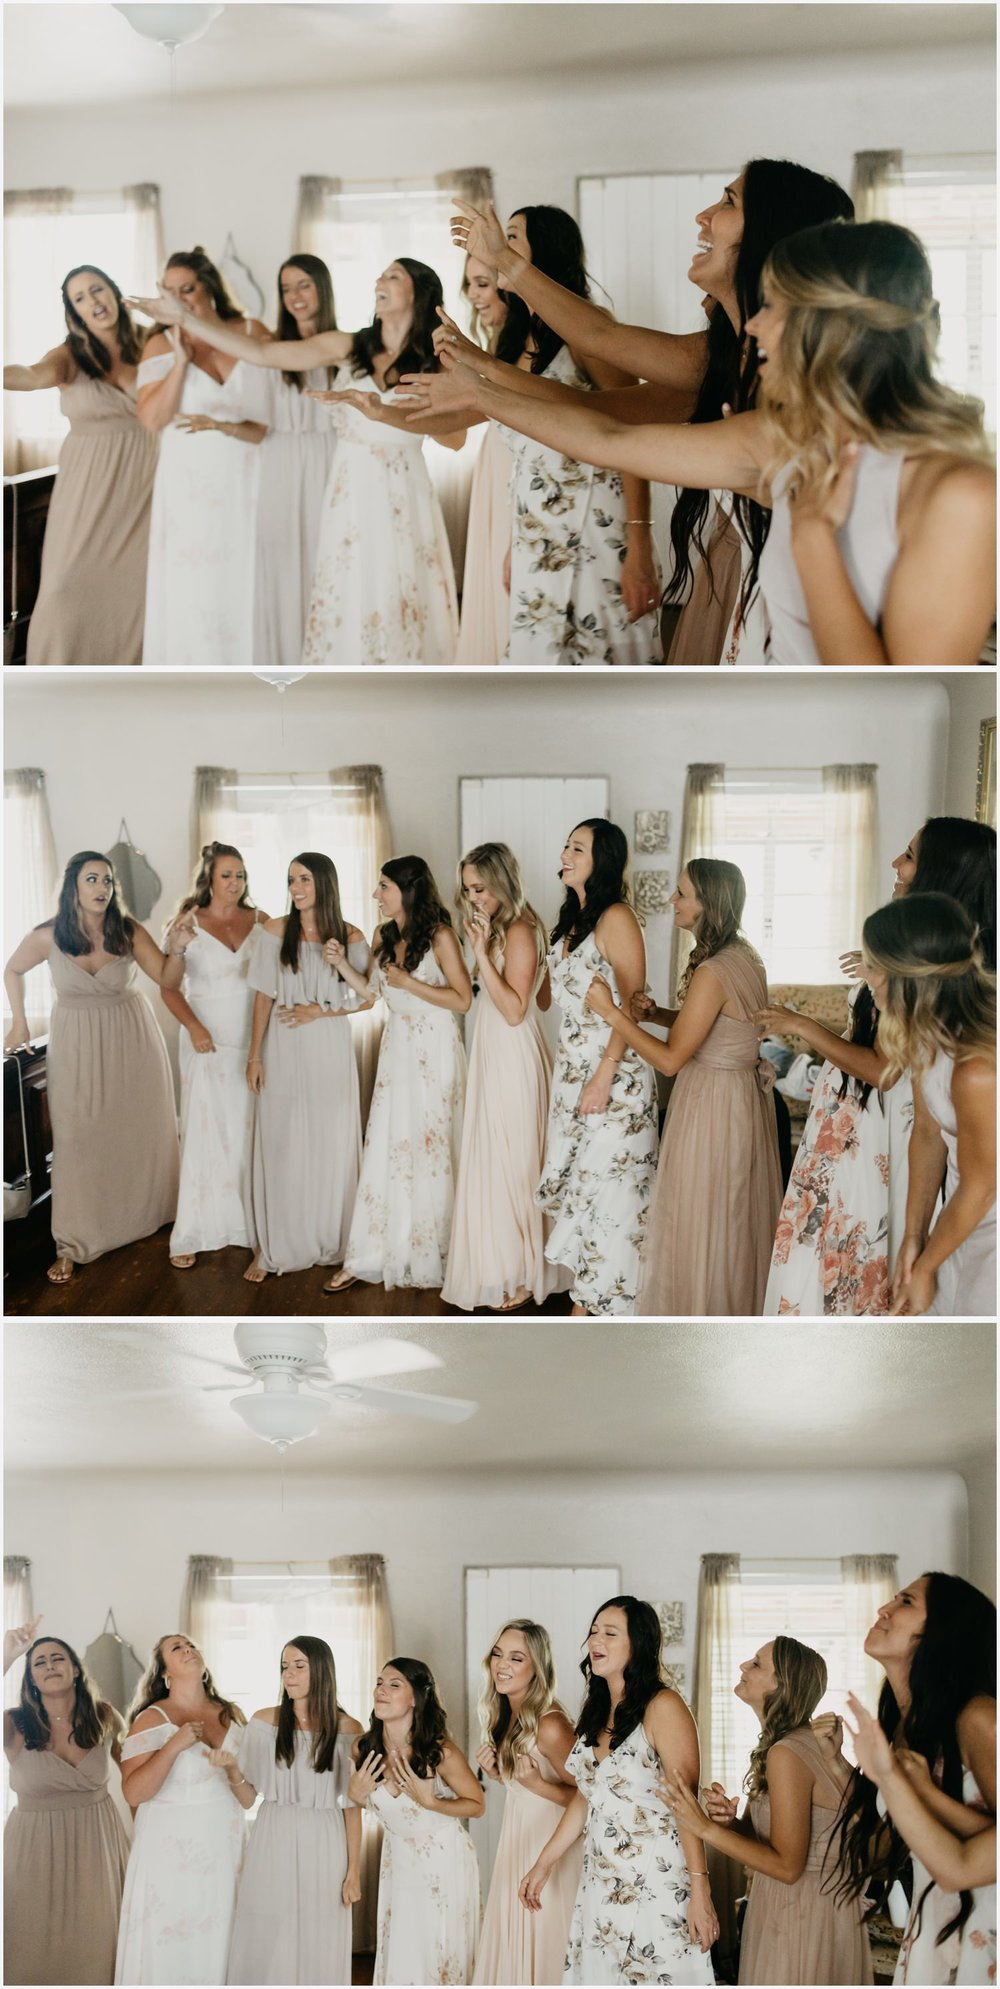 Bridesmaids singing to the bride in the Gabrella Manor